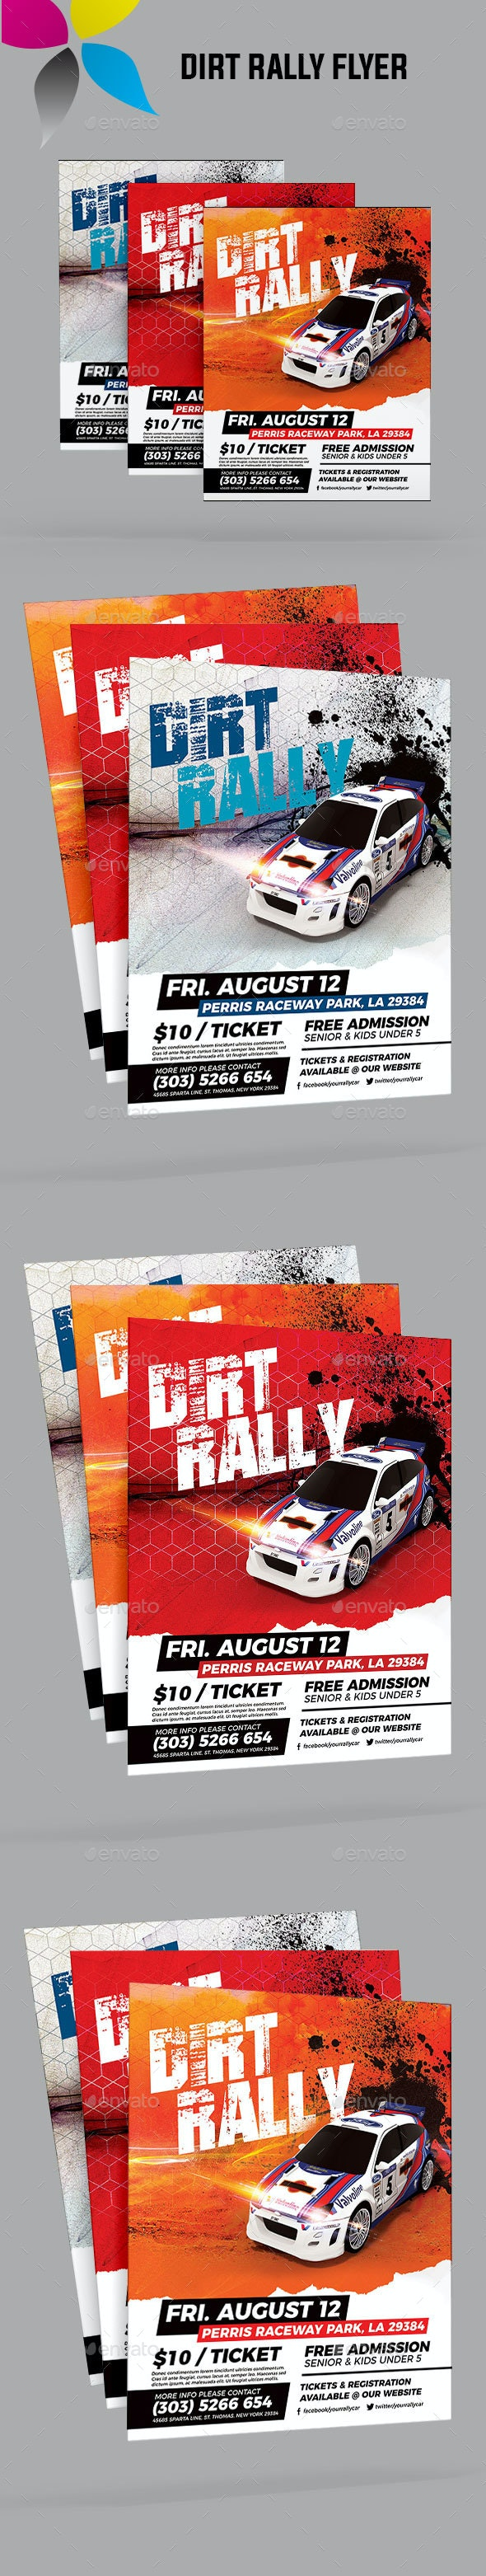 Dirt Rally Flyer - Sports Events